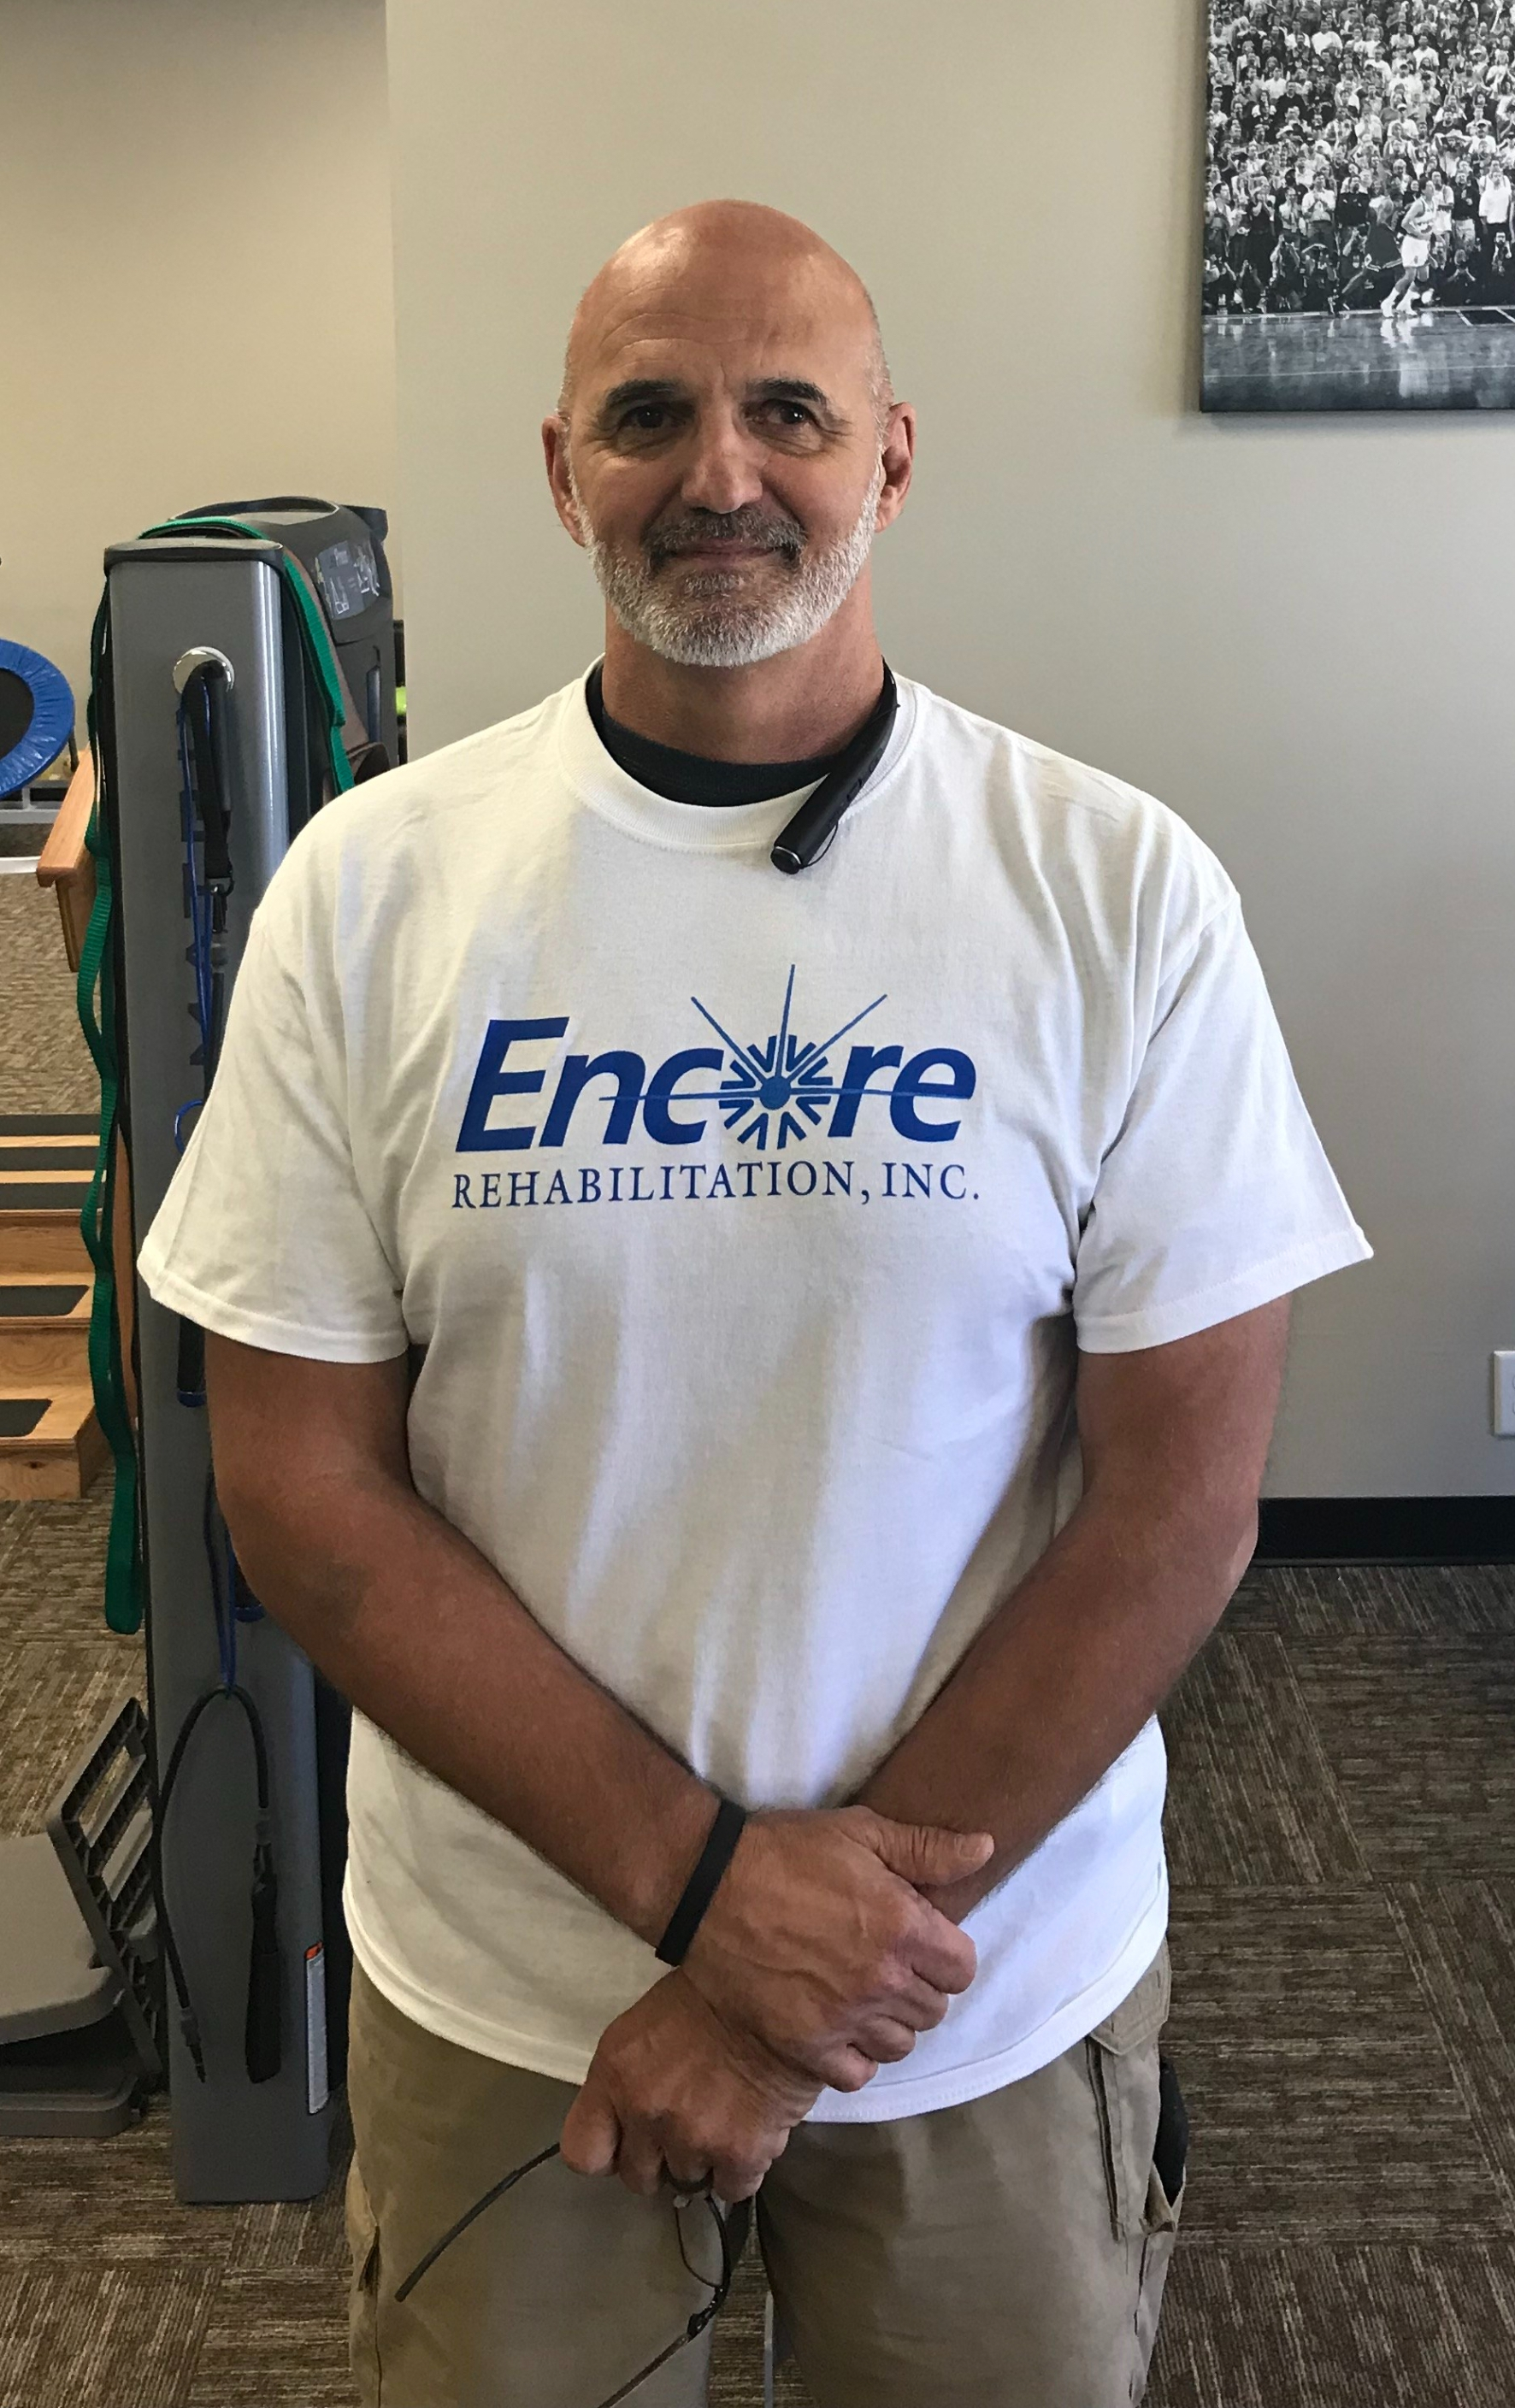 James Thrift - Patient of the Month for Encore Rehabilitation-Opelika #EncoreRehab